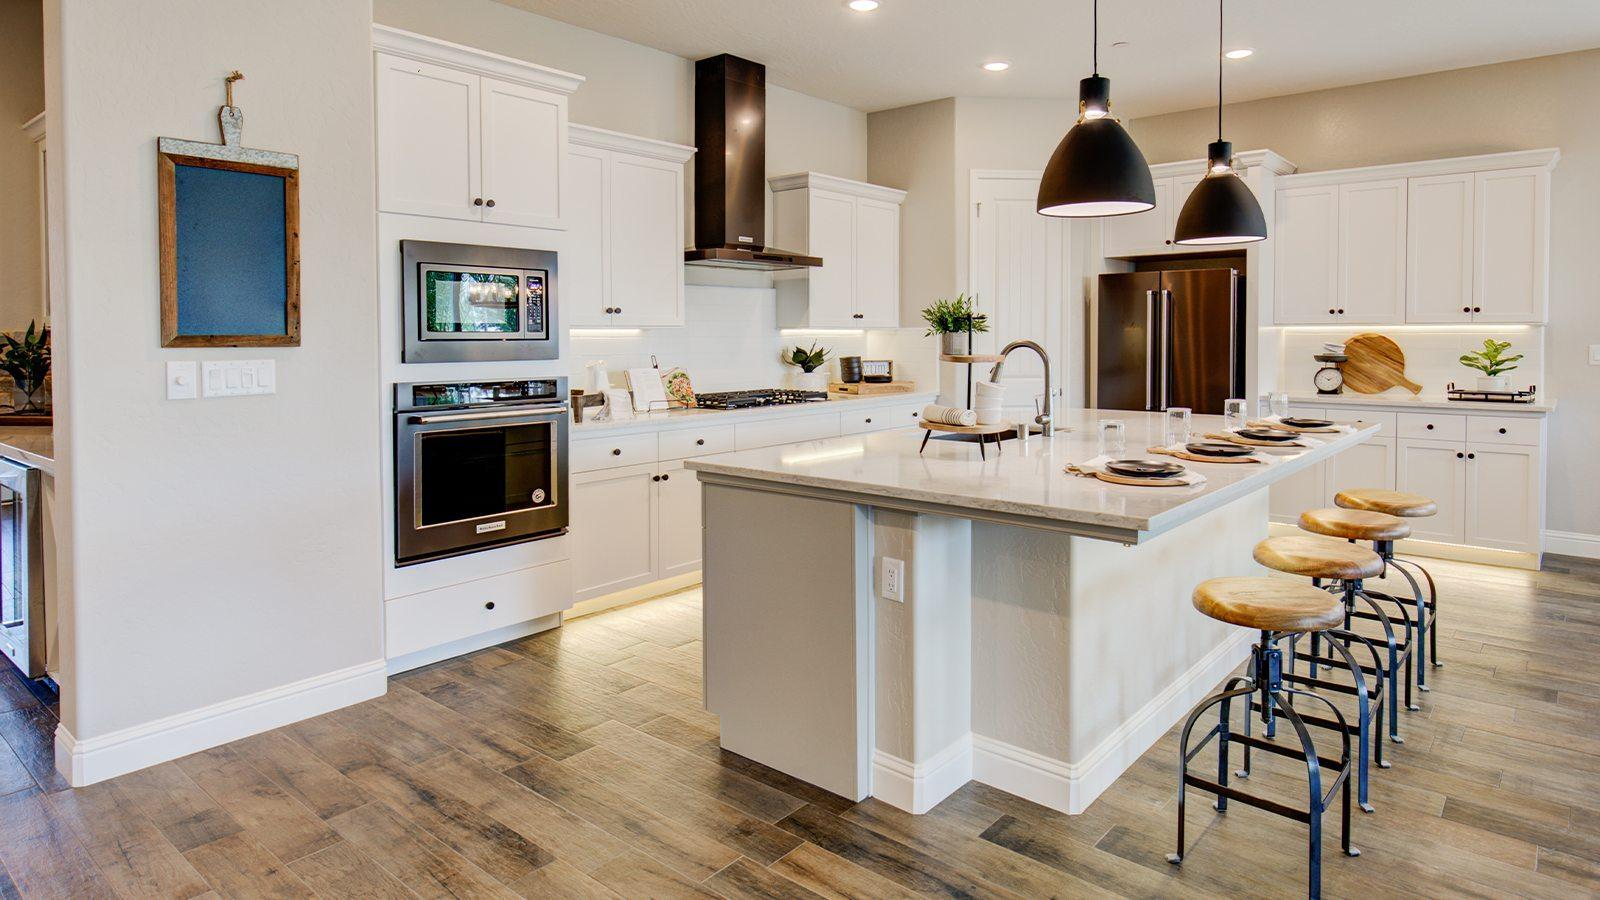 Kitchen featured in the Cali By Granville Homes  in Fresno, CA